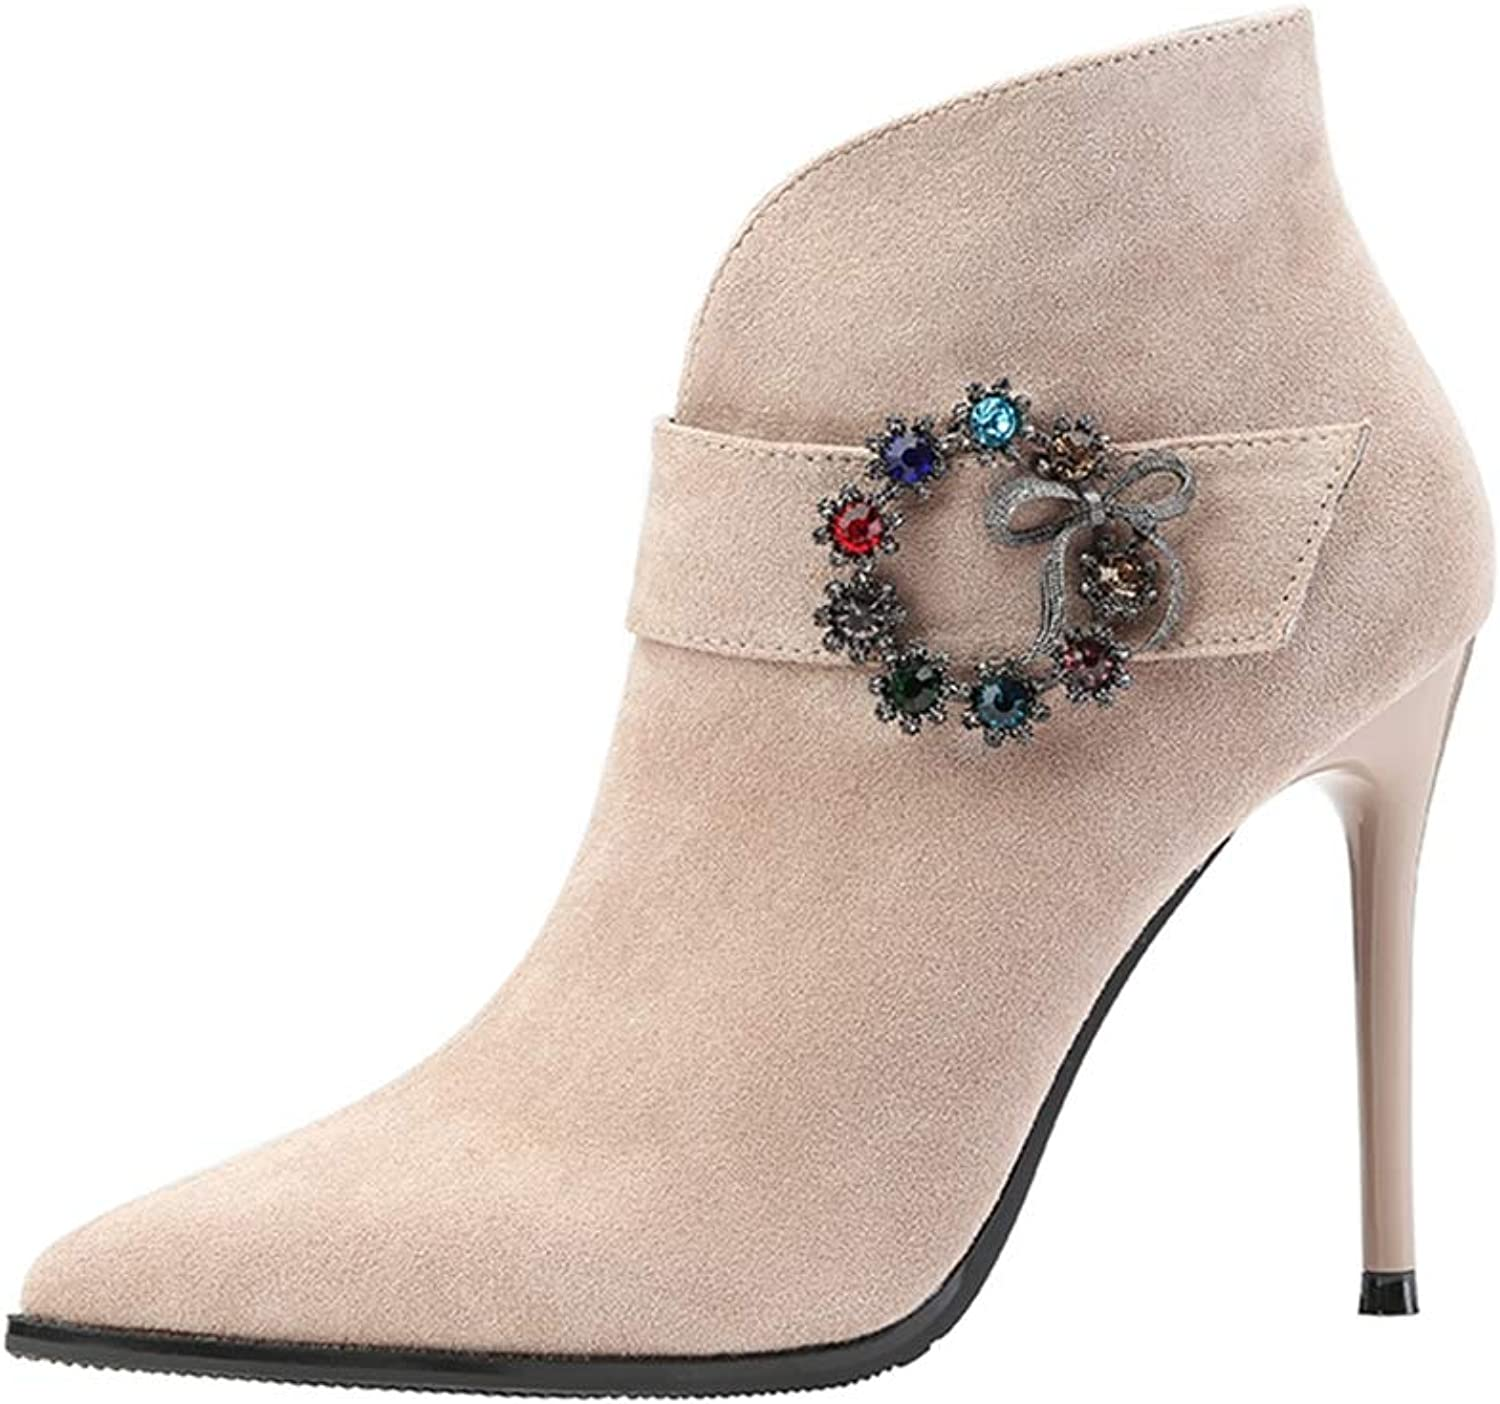 CYBLING Women Pointed Toe Ankle Boots Rhinestone Buckle Dress shoes Stiletto High Heels Short Warm Booties